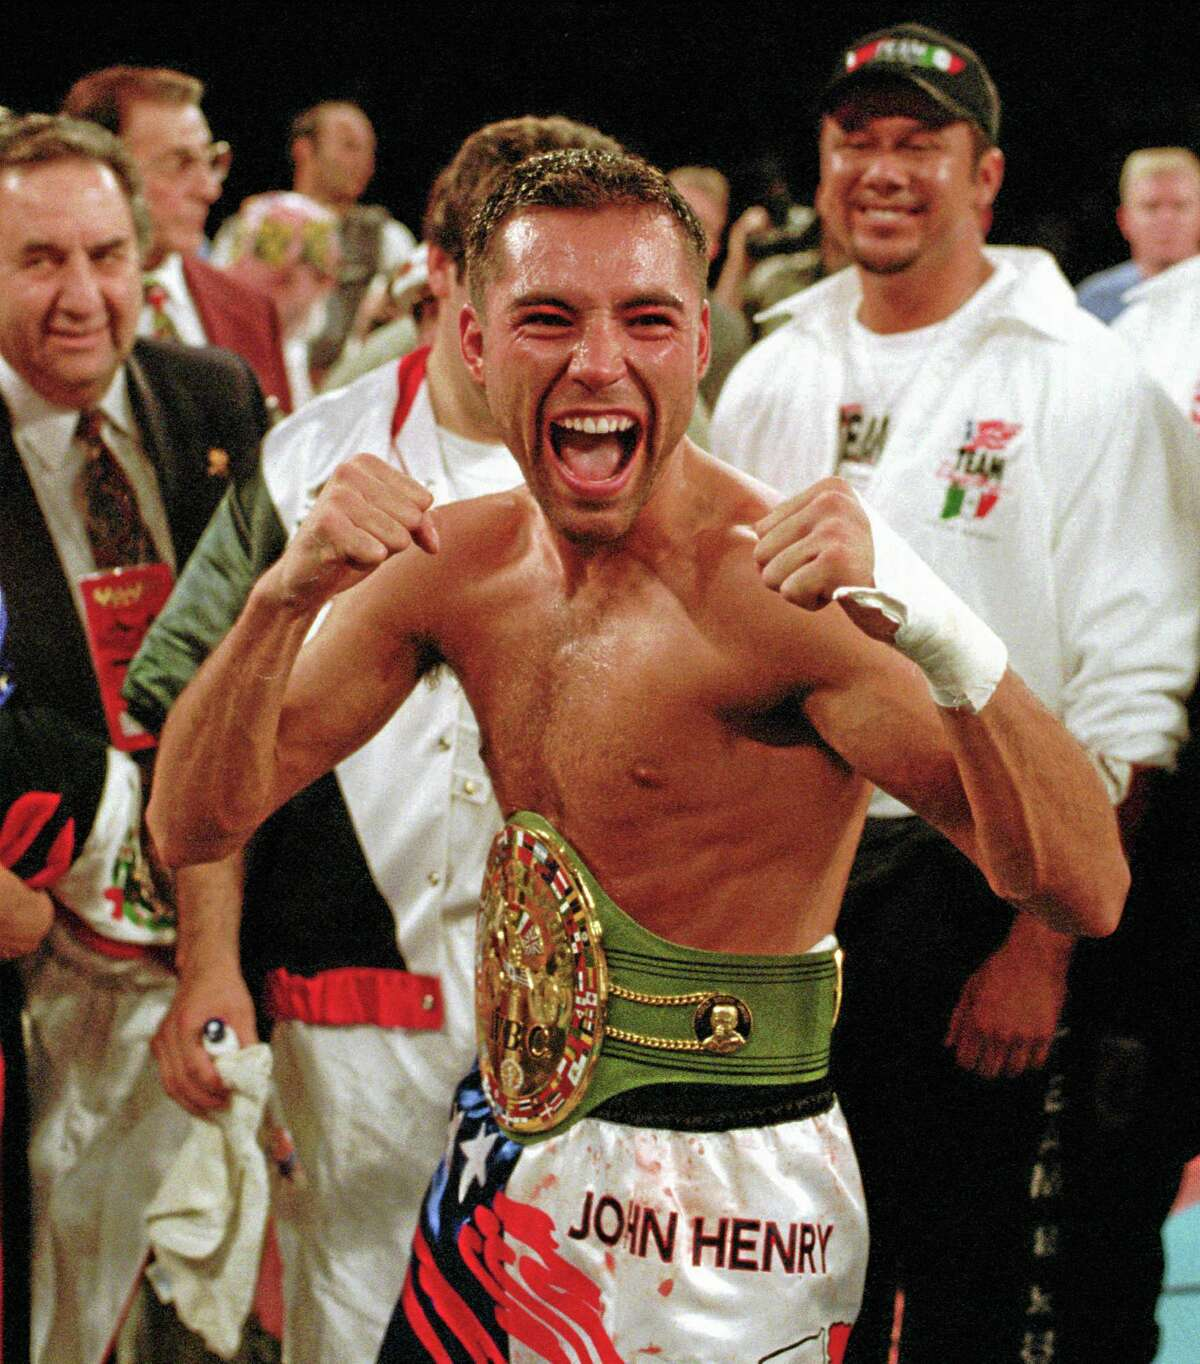 Oscar De La Hoya, Felix Trinidad and Joe Calzaghe head the class of 2014 to be inducted into the International Boxing Hall of Fame.